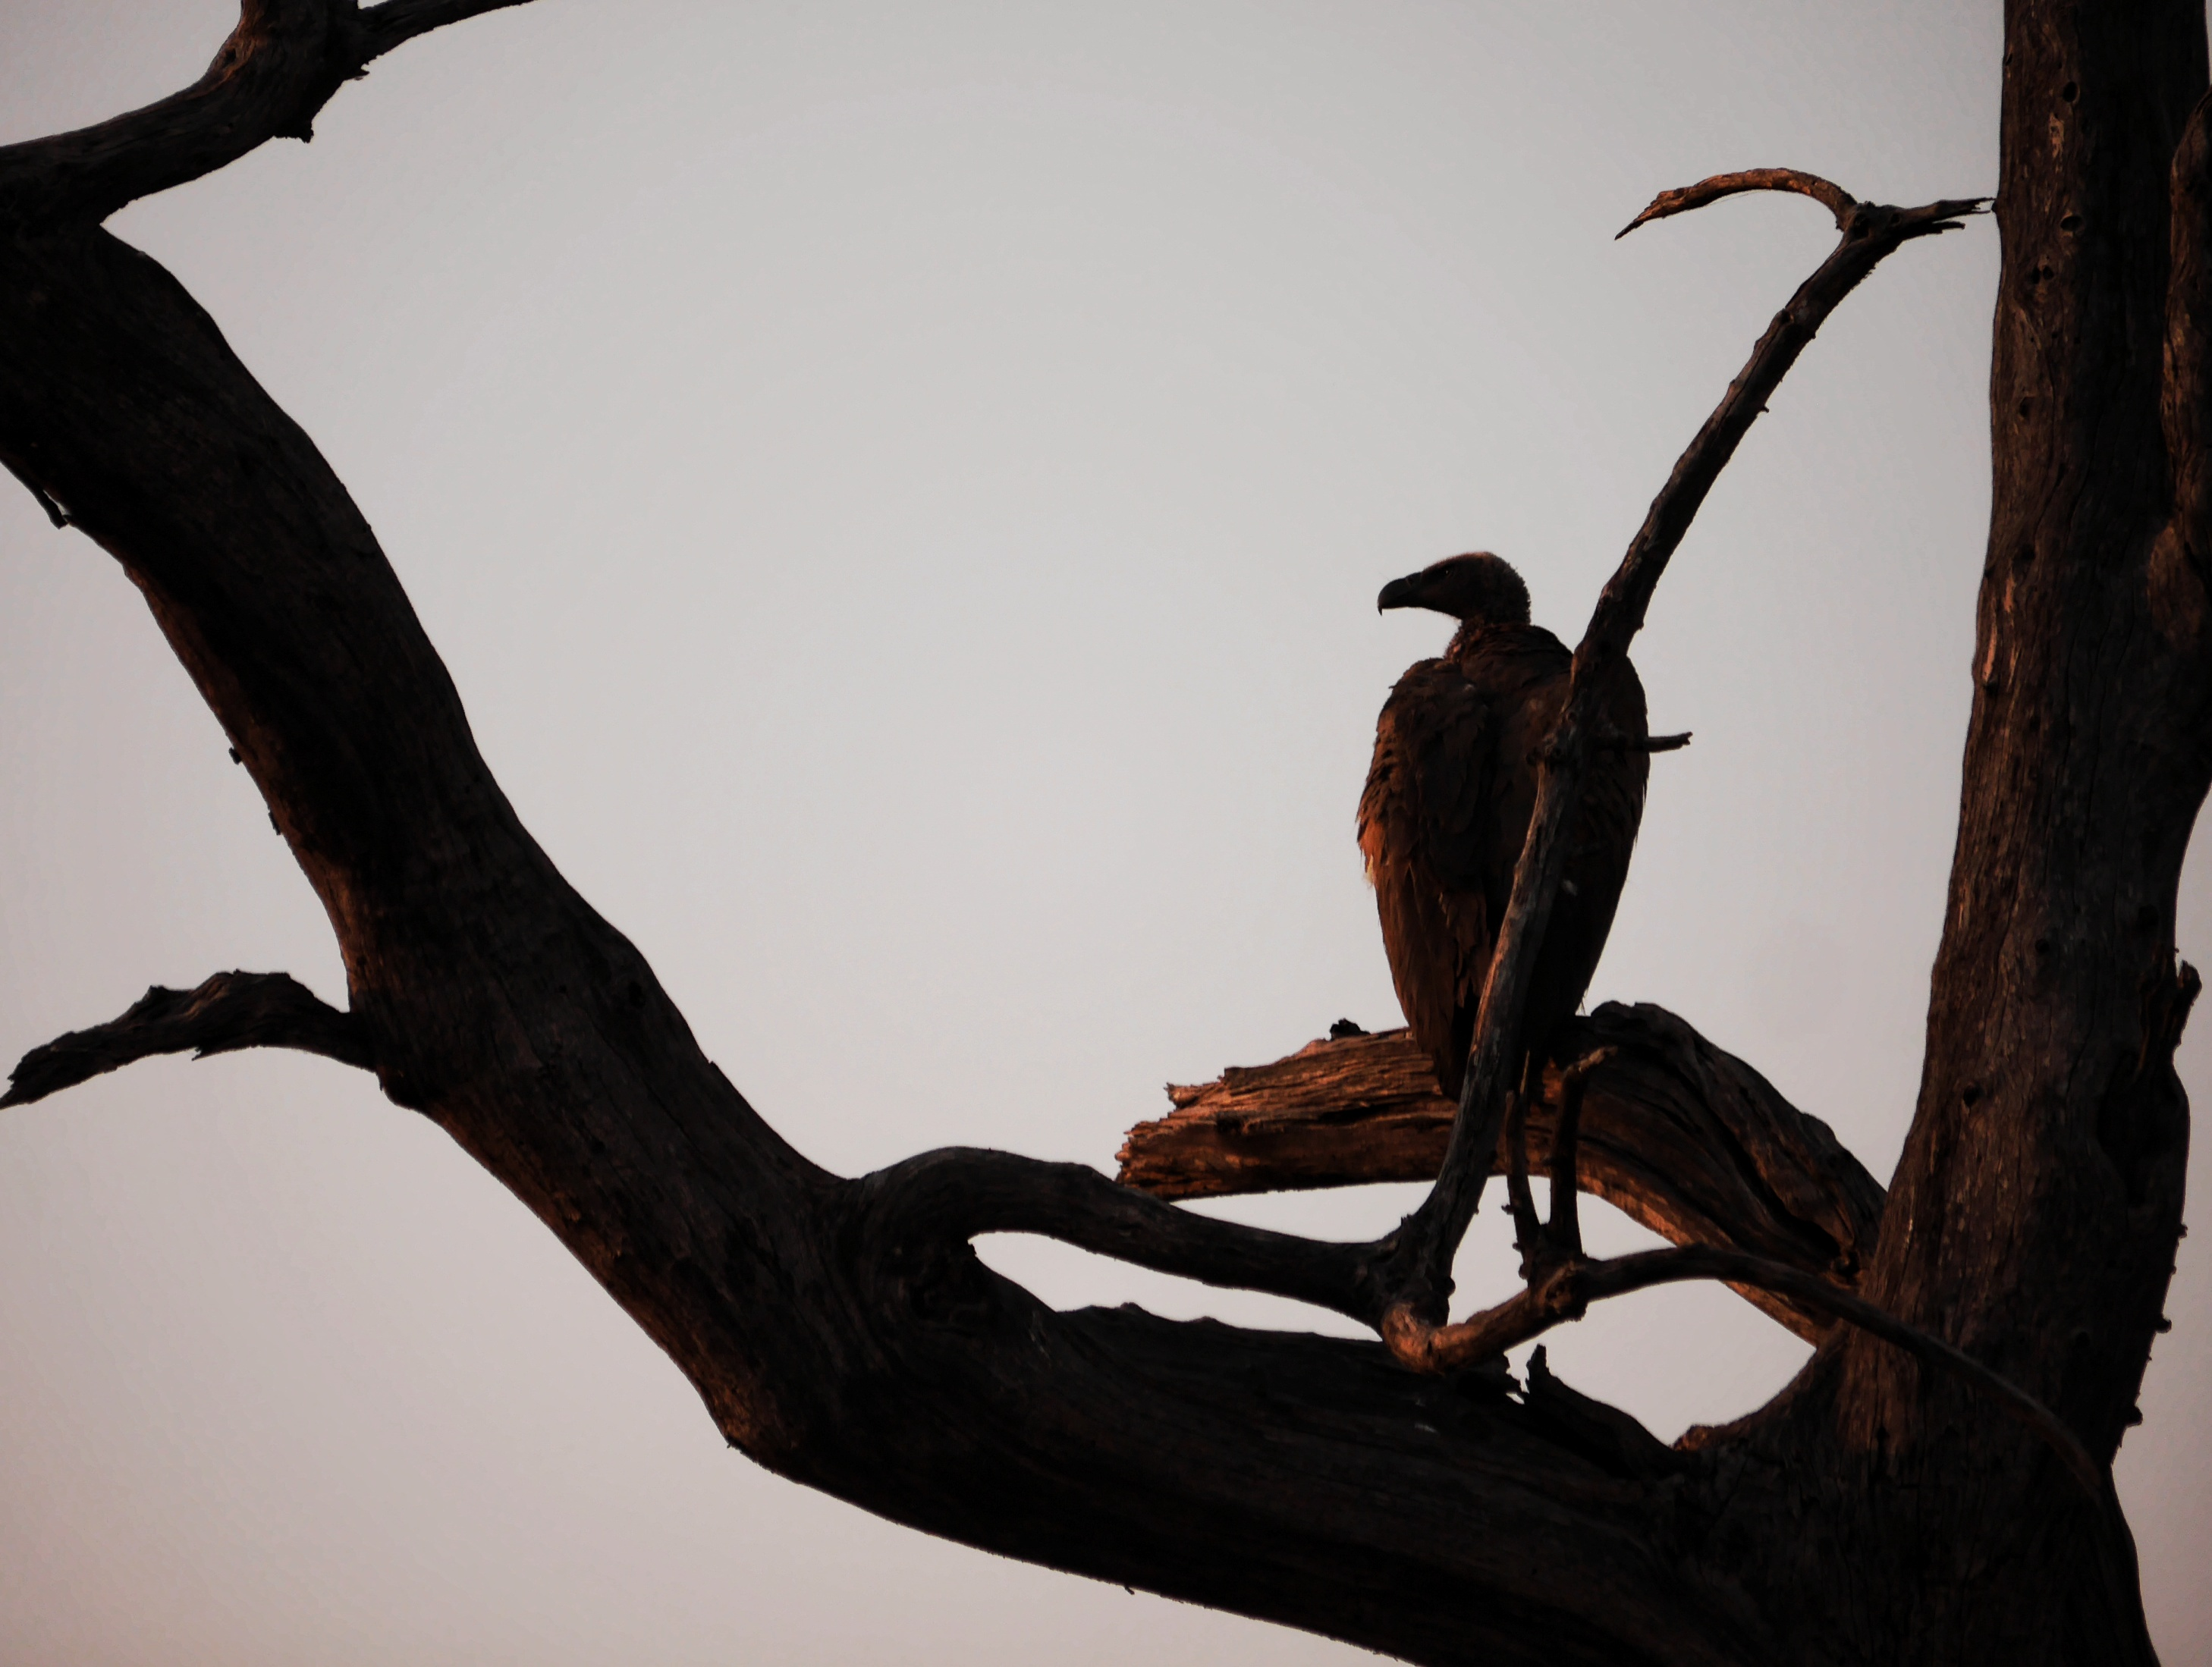 Vulture in Silhouette